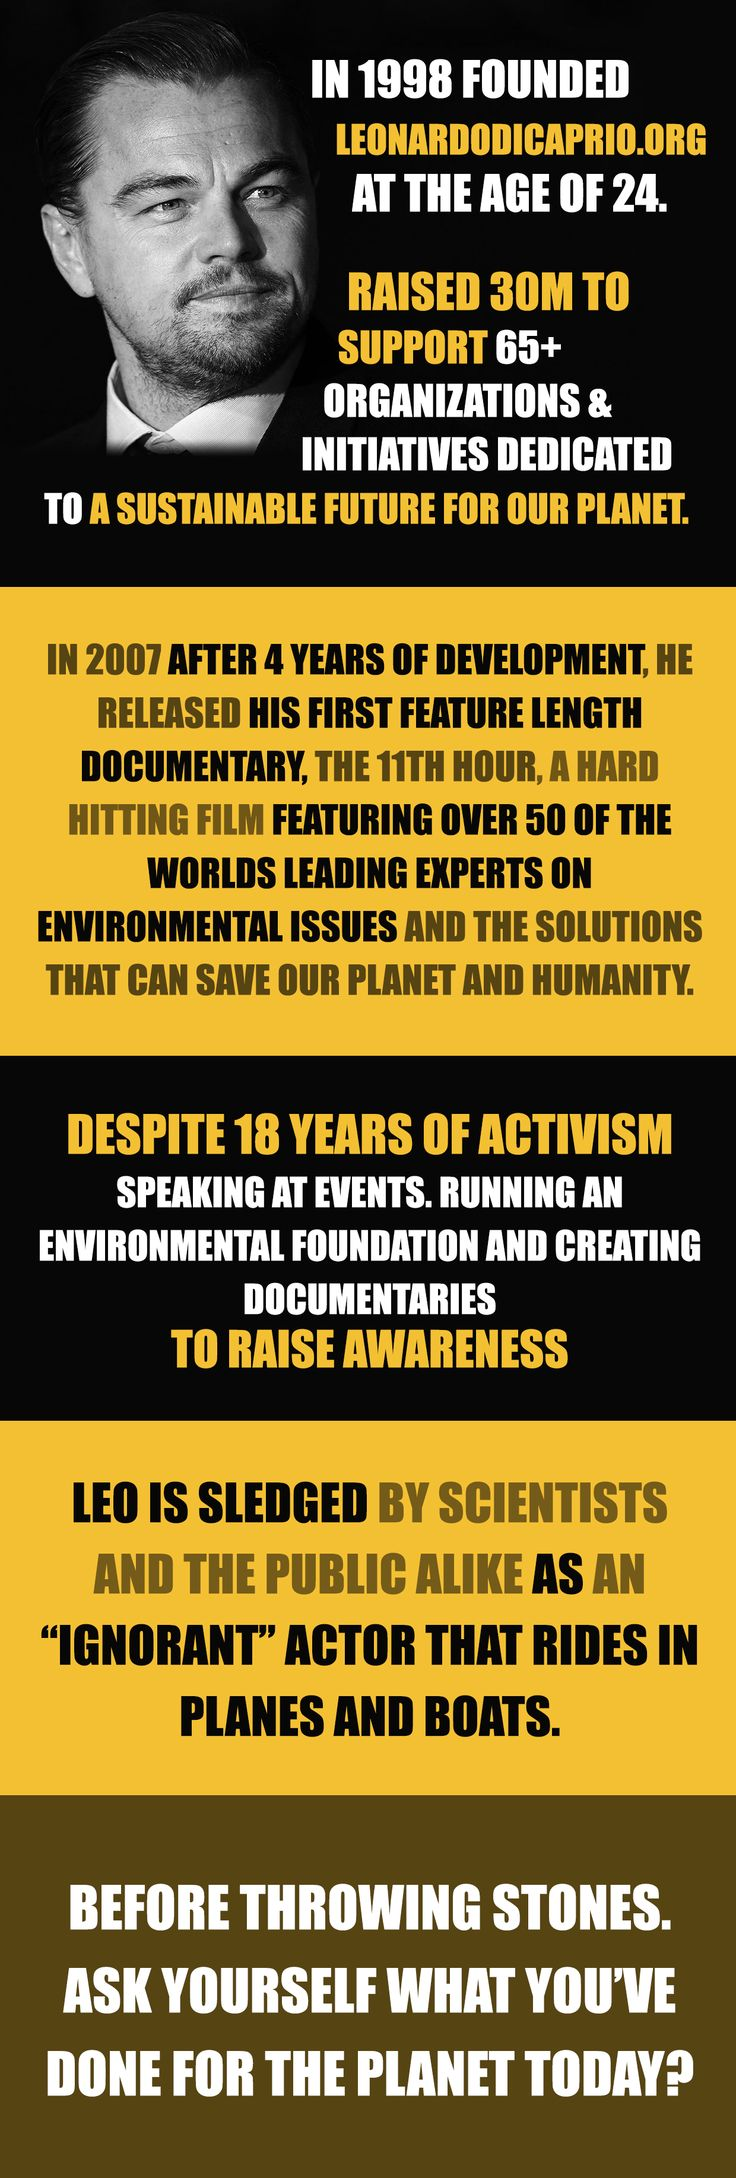 Leonardo DiCaprio's Oscars Acceptance Speech Was Worth The Wait | In 1998 Leo founded leonardodicaprio.org an organisation dedicated to the health and well being of our planet. Yet after 19 years of hard work and activism people would rather focus on the fact that he's rich and rides in boats and planes. Before throwing stones ask yourself what you've done for the planet today? #Best Actor at the 2016 Golden Globes #Leo #The Revenant #Leonardo DiCaprio #73rd Annual Golden Globe Awards